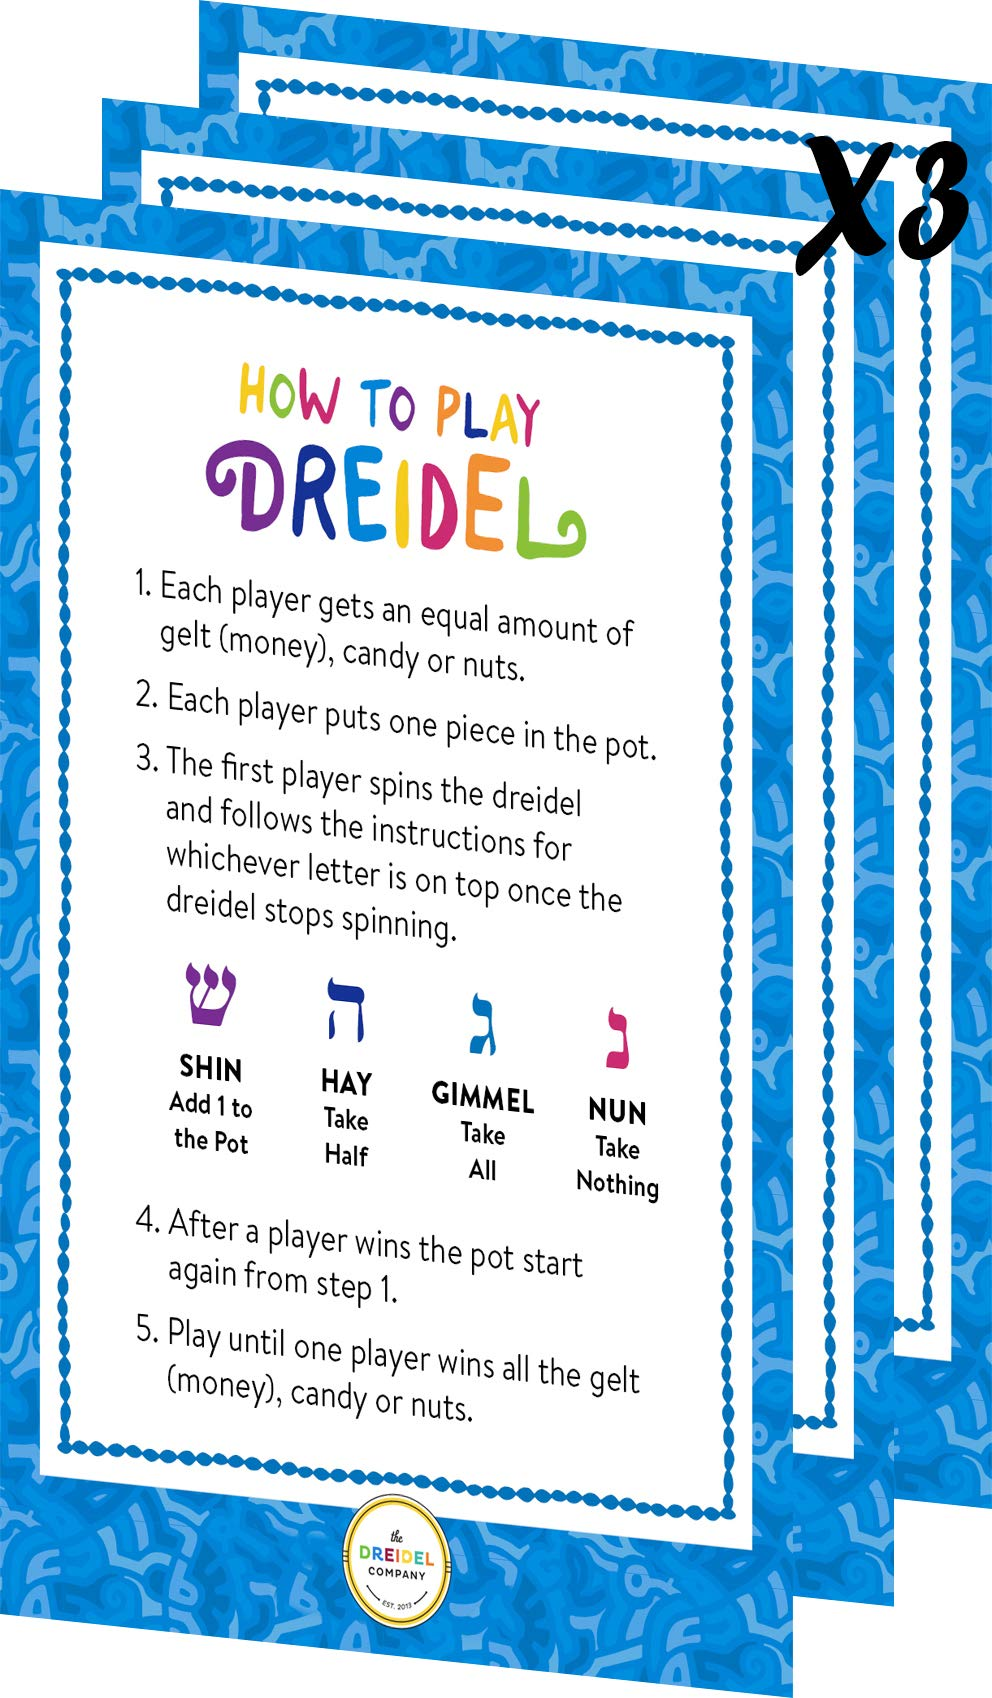 Wood Dreidel 30 Solid Blue & White Wooden Hanukkah Dreidels Hand Painted With English Transliteration - Includes x3 Game Instruction Cards! (30-Pack) by The Dreidel Company (Image #4)